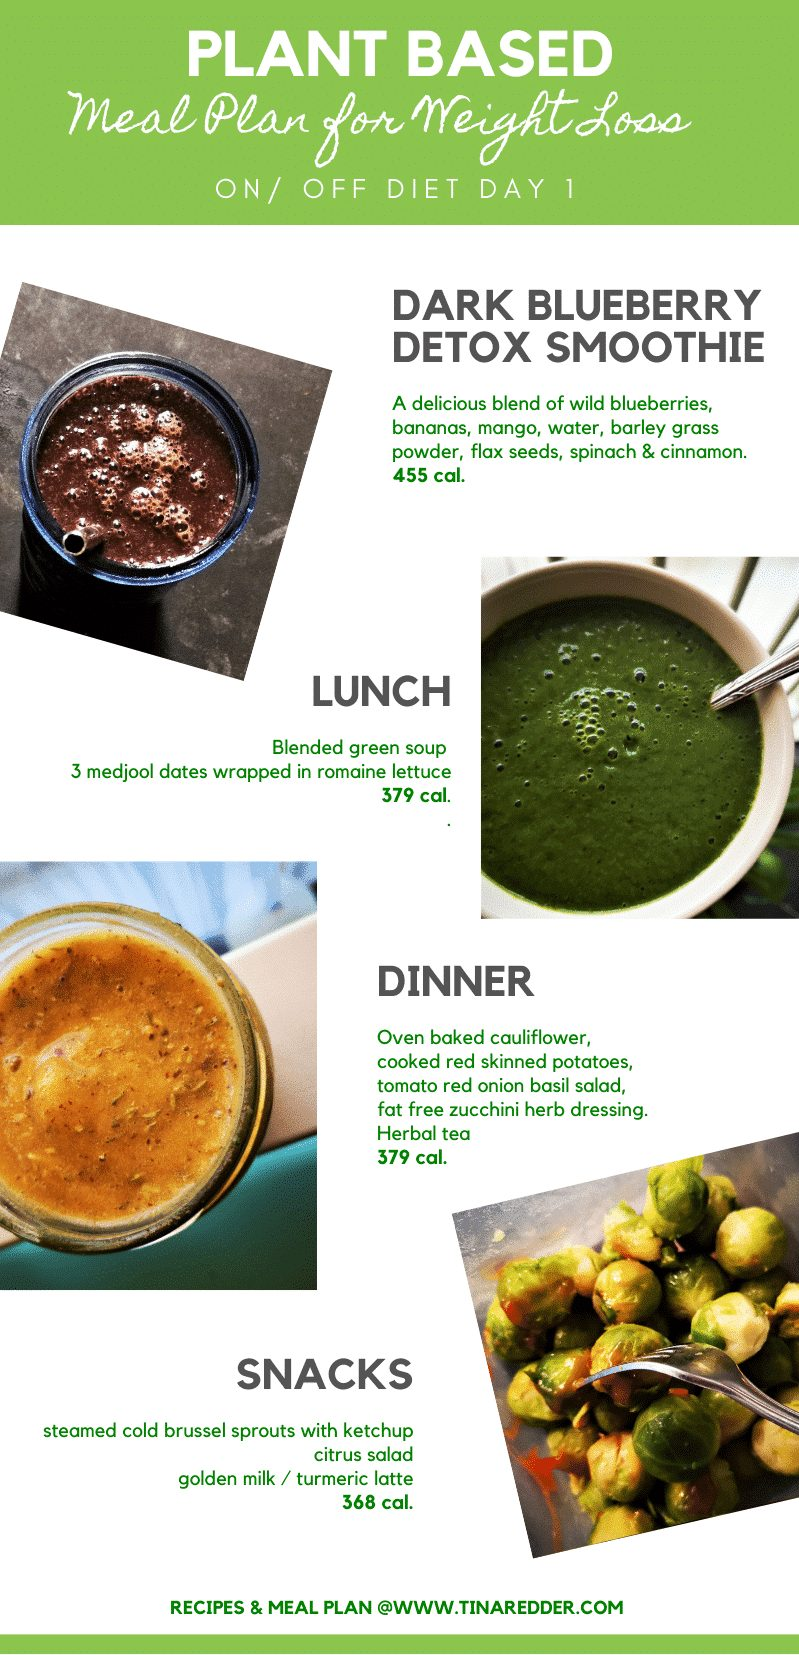 plant based meal  plan for weight loss 1